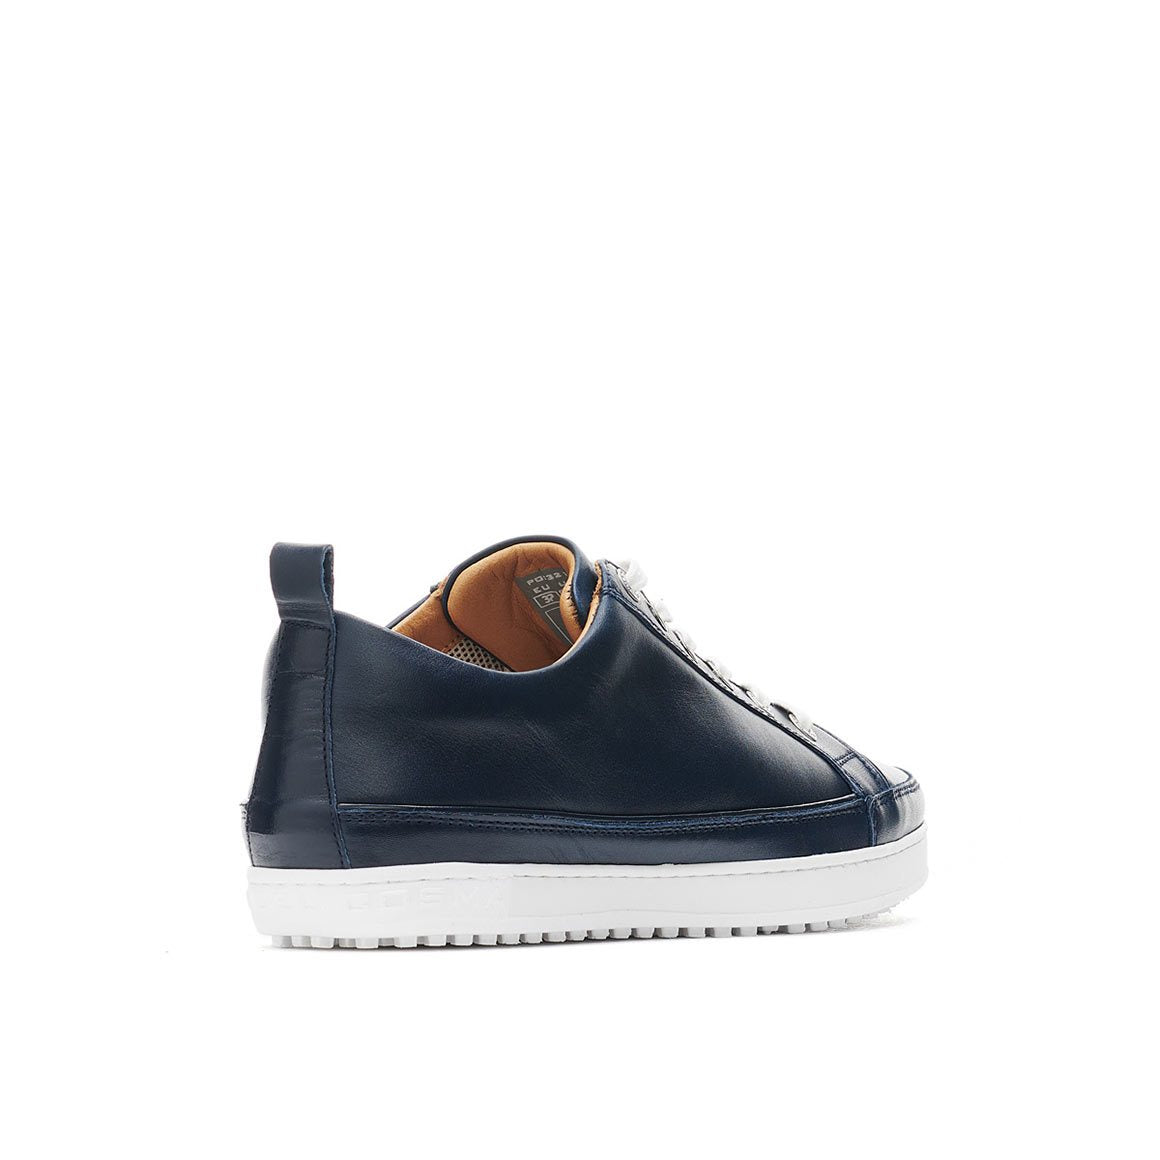 Festiva Navy Golf Shoe